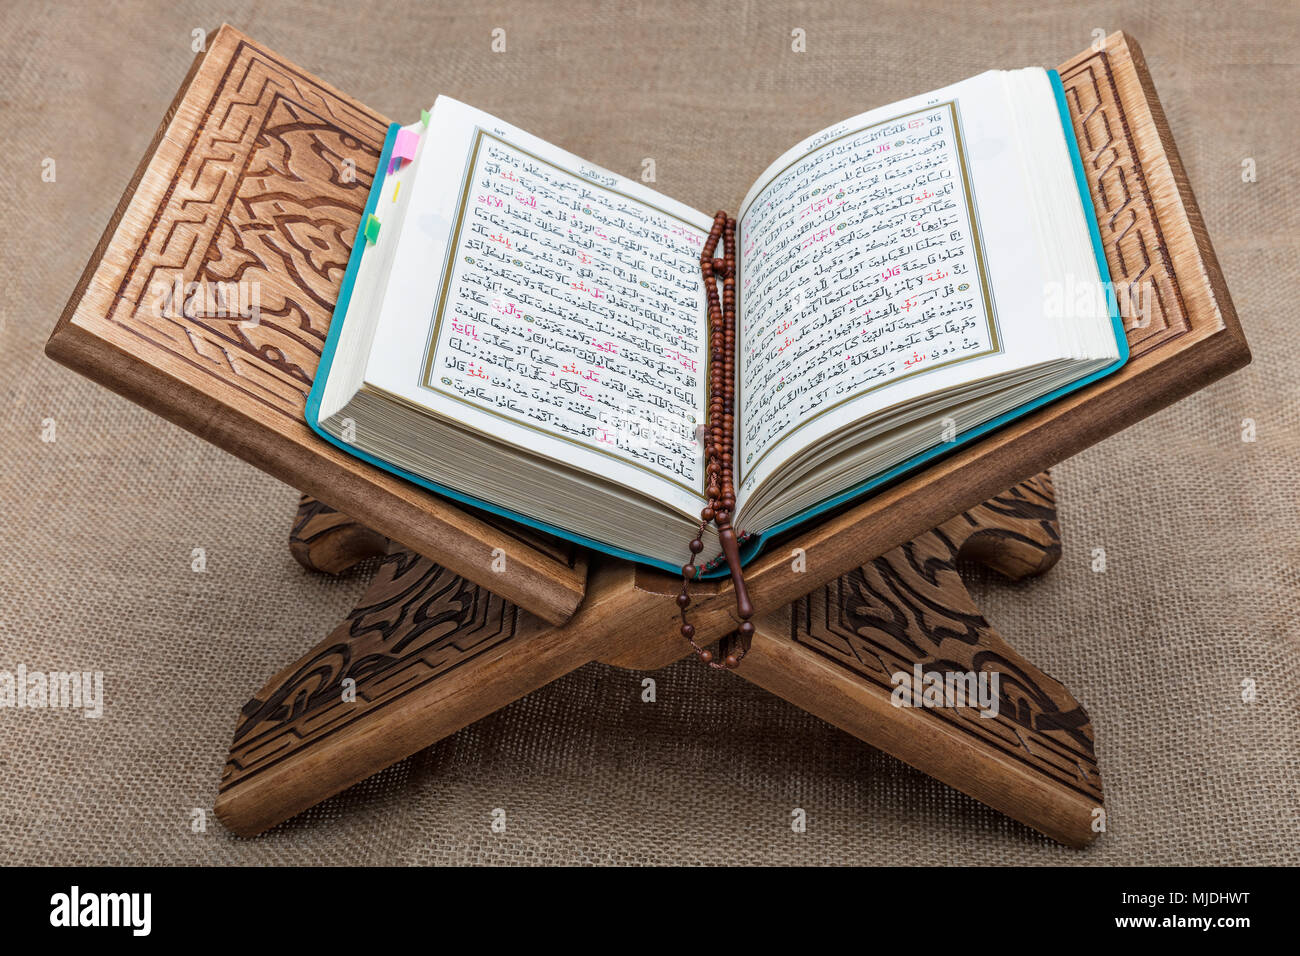 Quran - holy book of Muslims around the world, placed on a wooden stand . - Stock Image